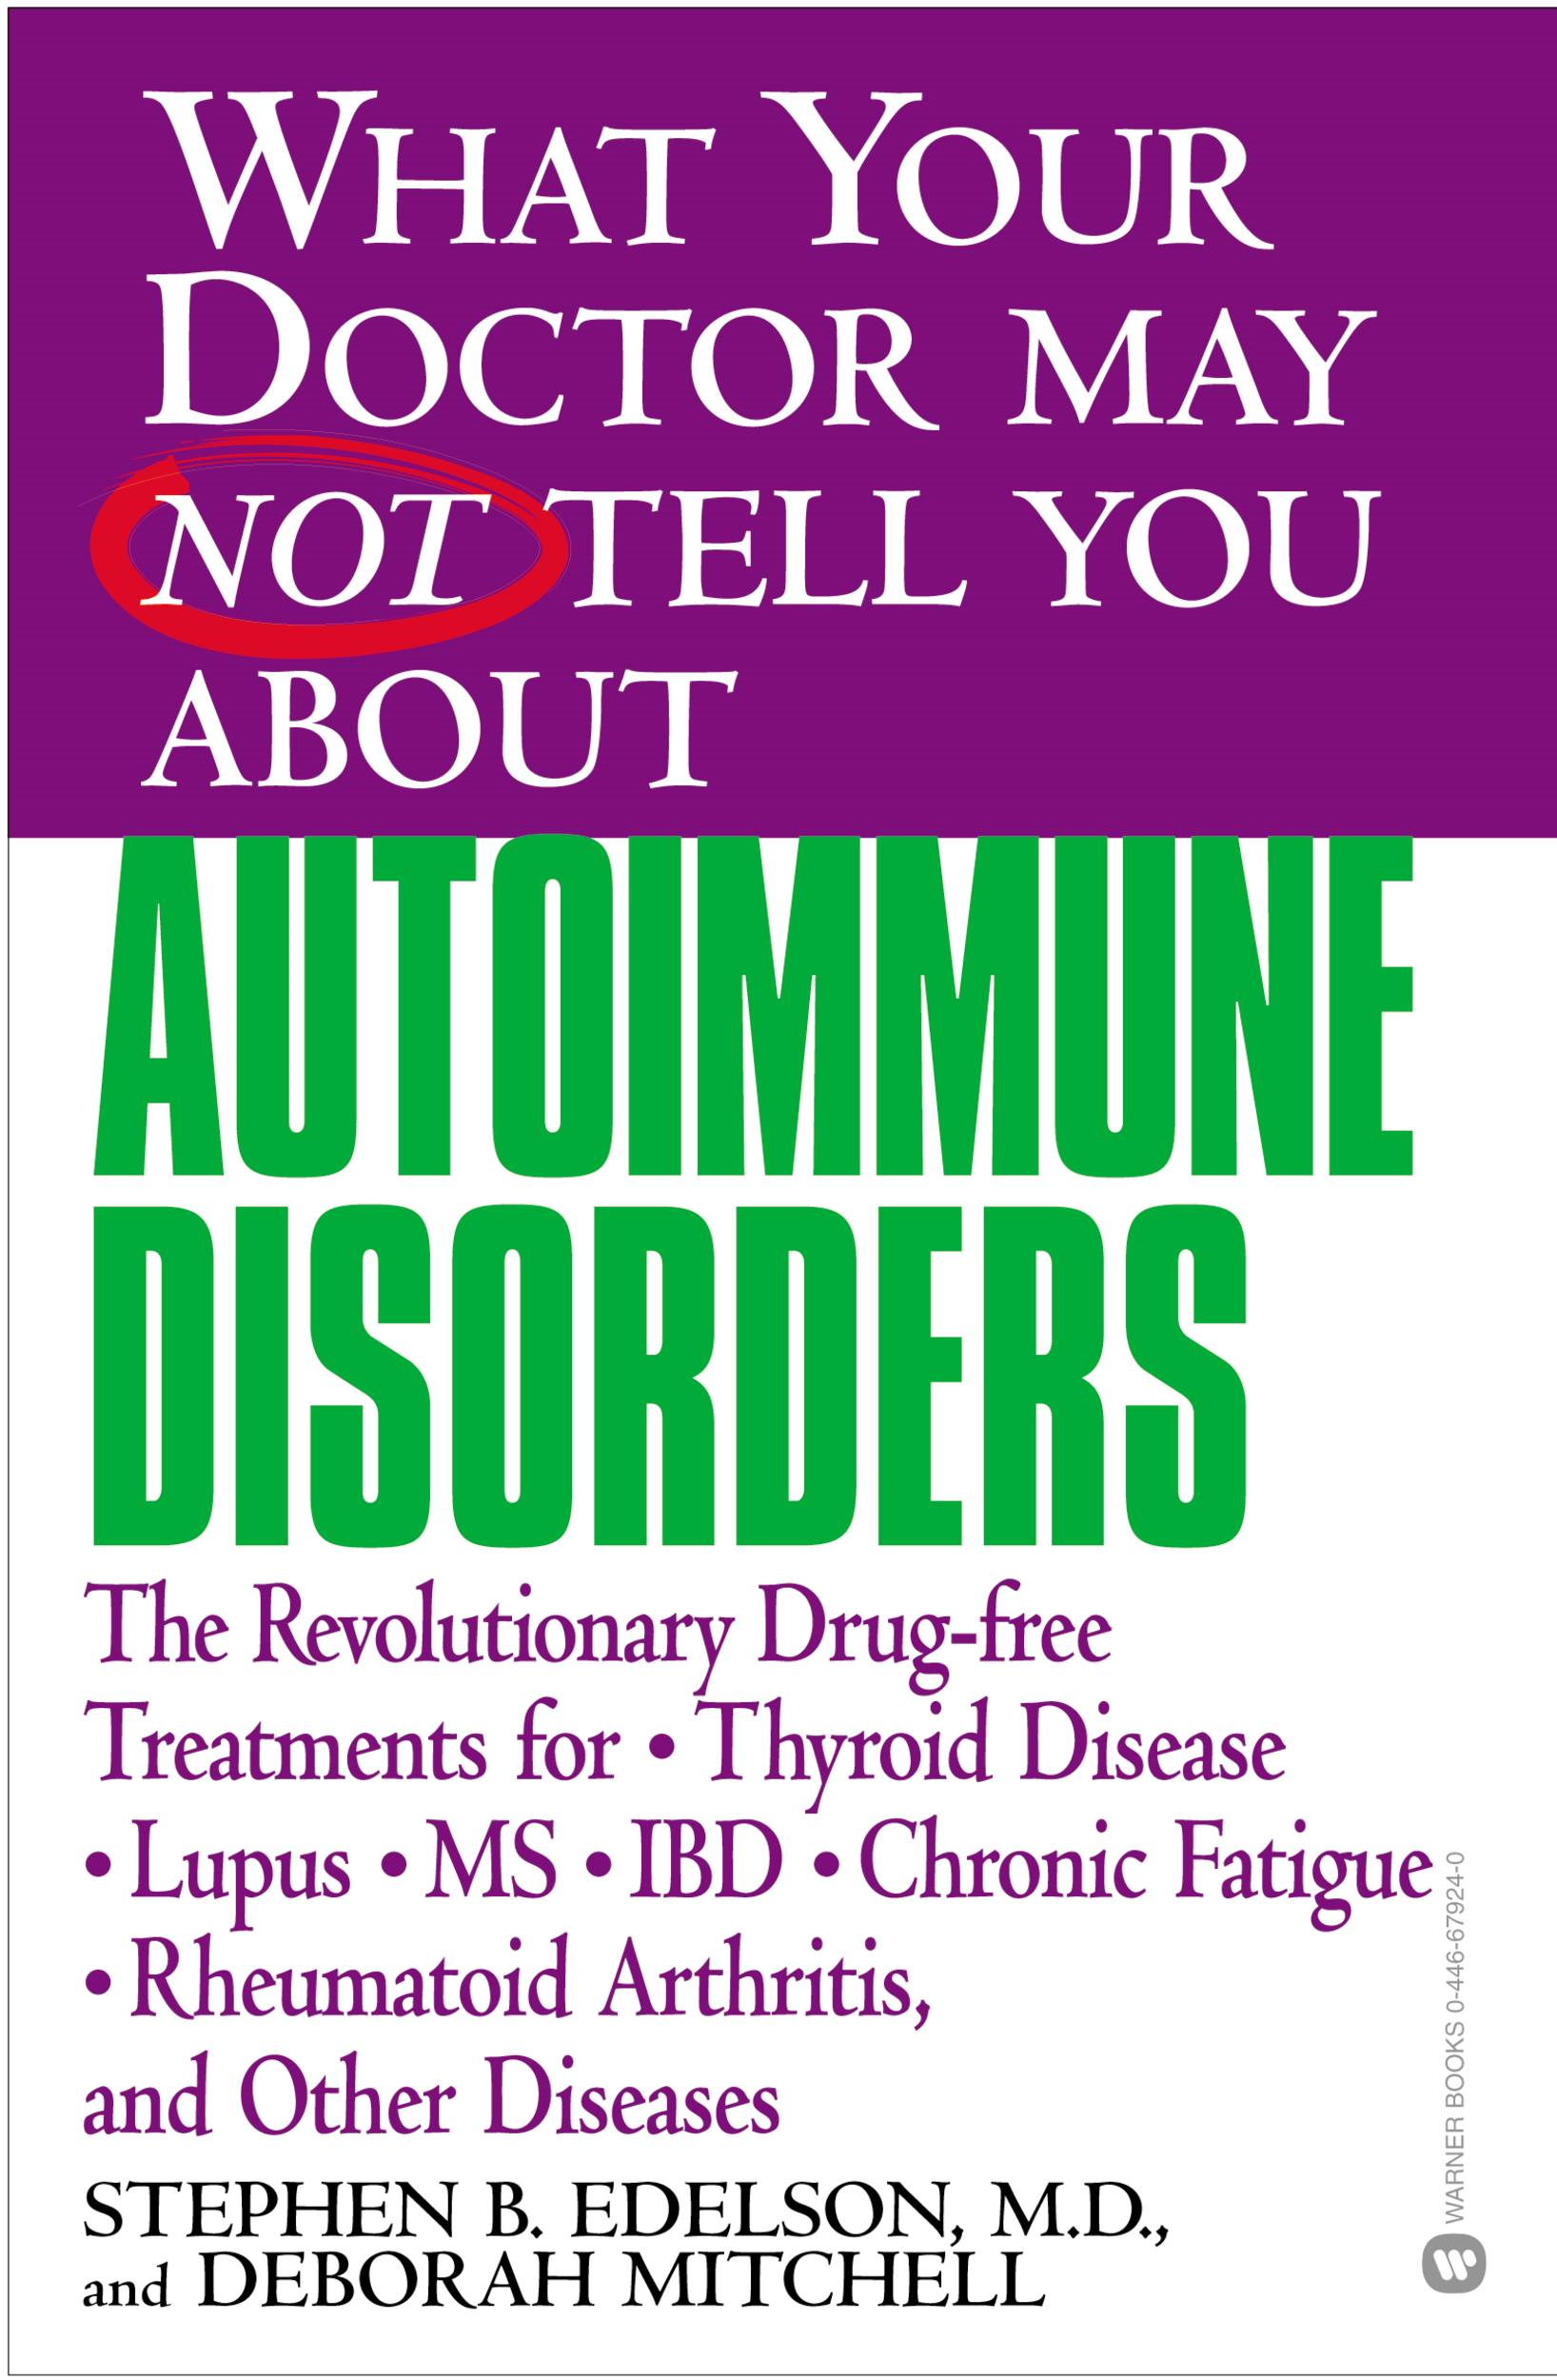 What Your Doctor May Not Tell You About(TM): Autoimmune Disorders